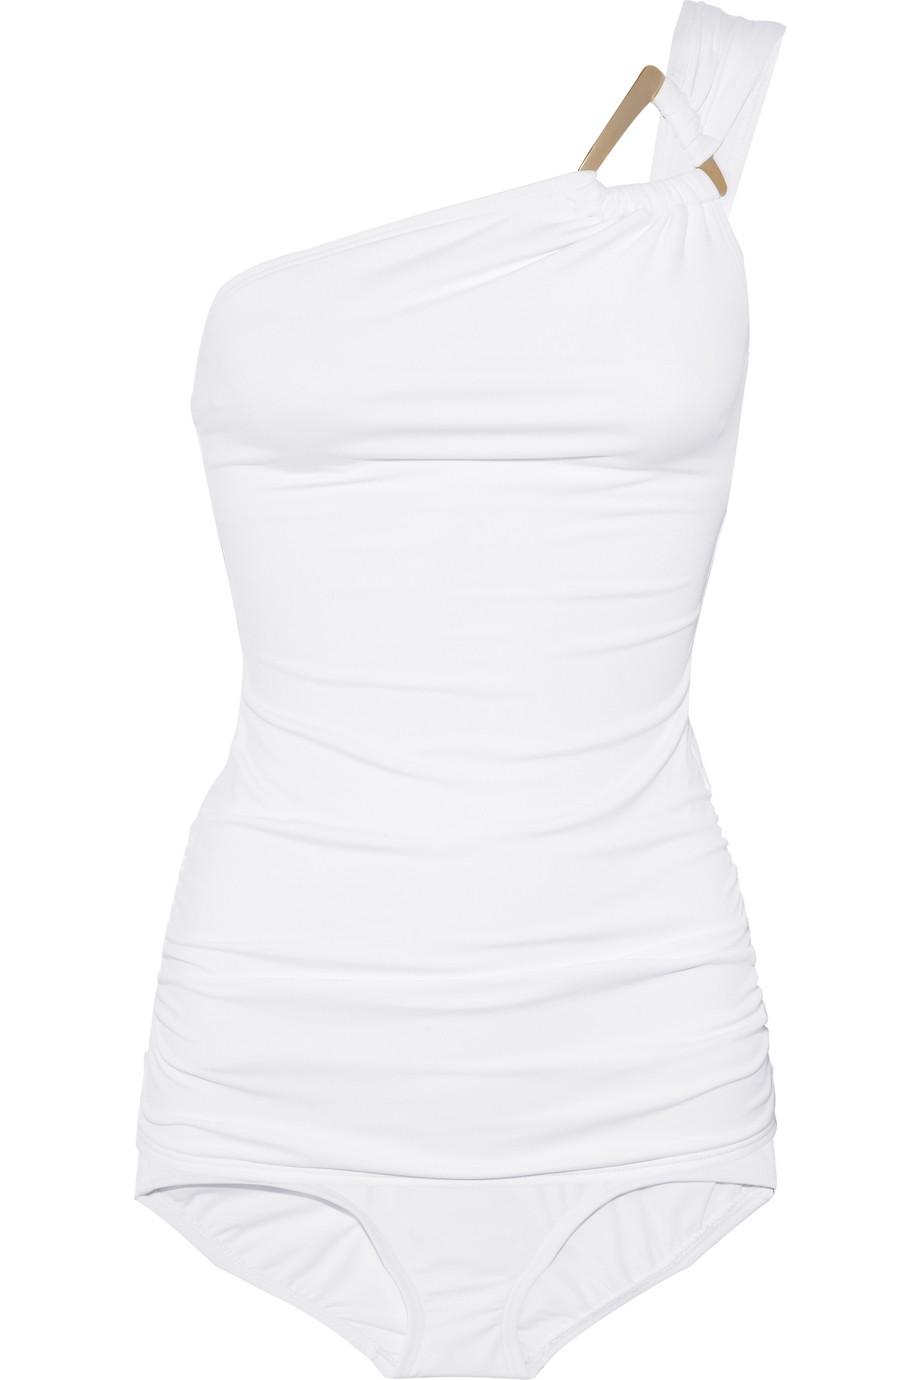 0a9d6c1c874 Michael Kors Untamed Asymmetric One-shoulder Tankini in White - Lyst